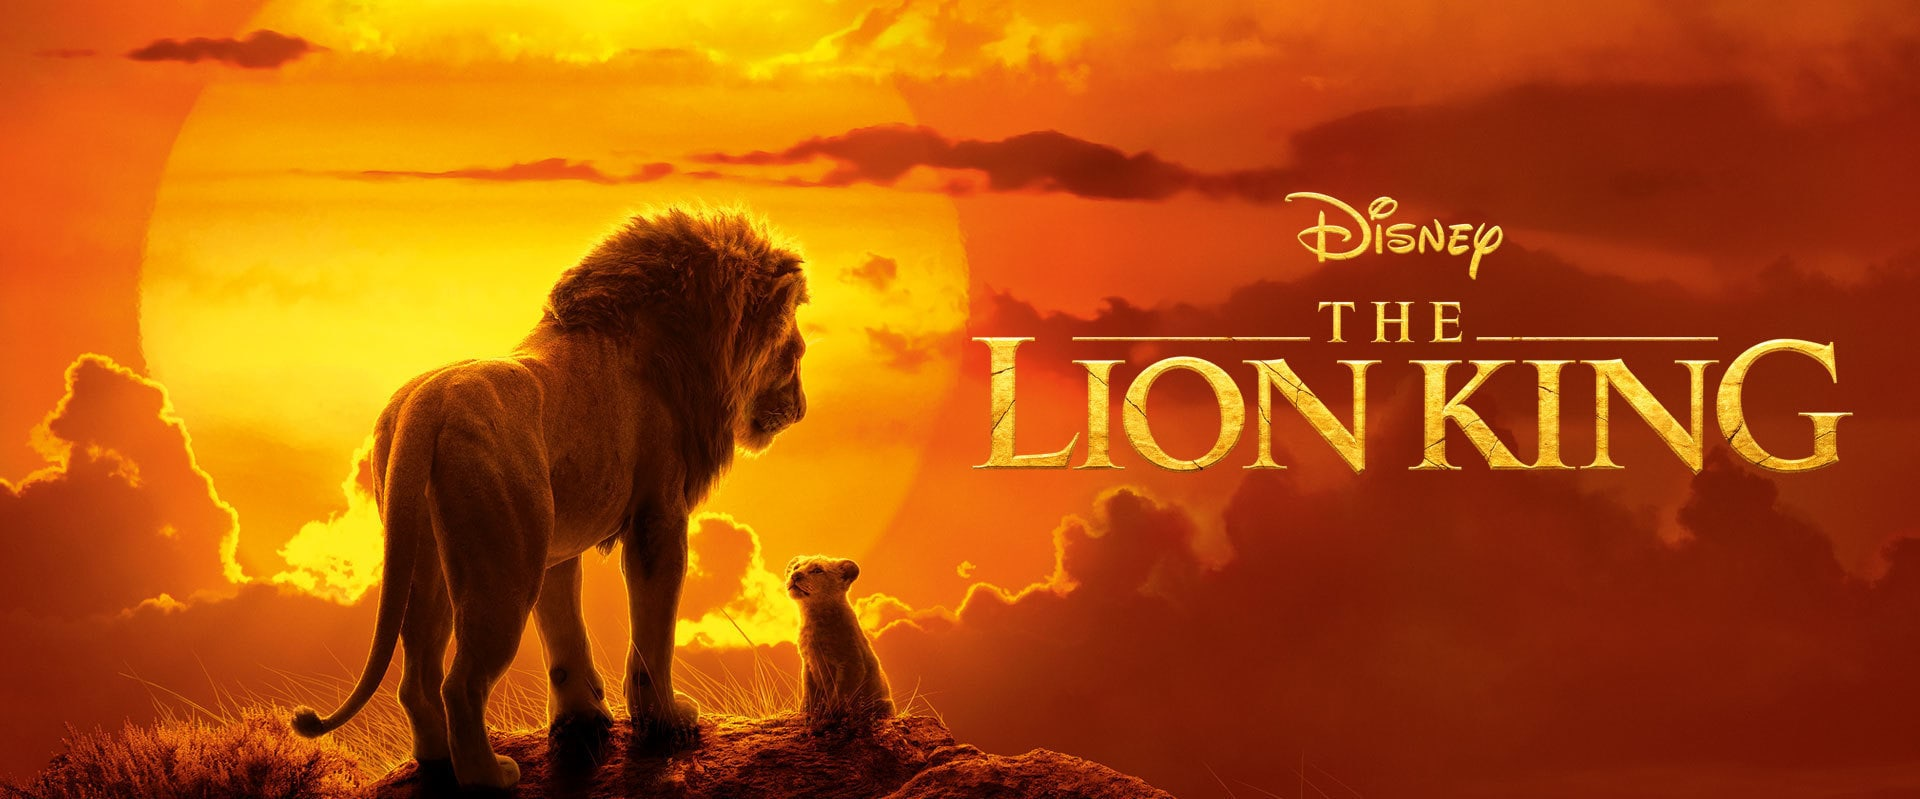 The Lion King Payoff Poster - EMEA Banner